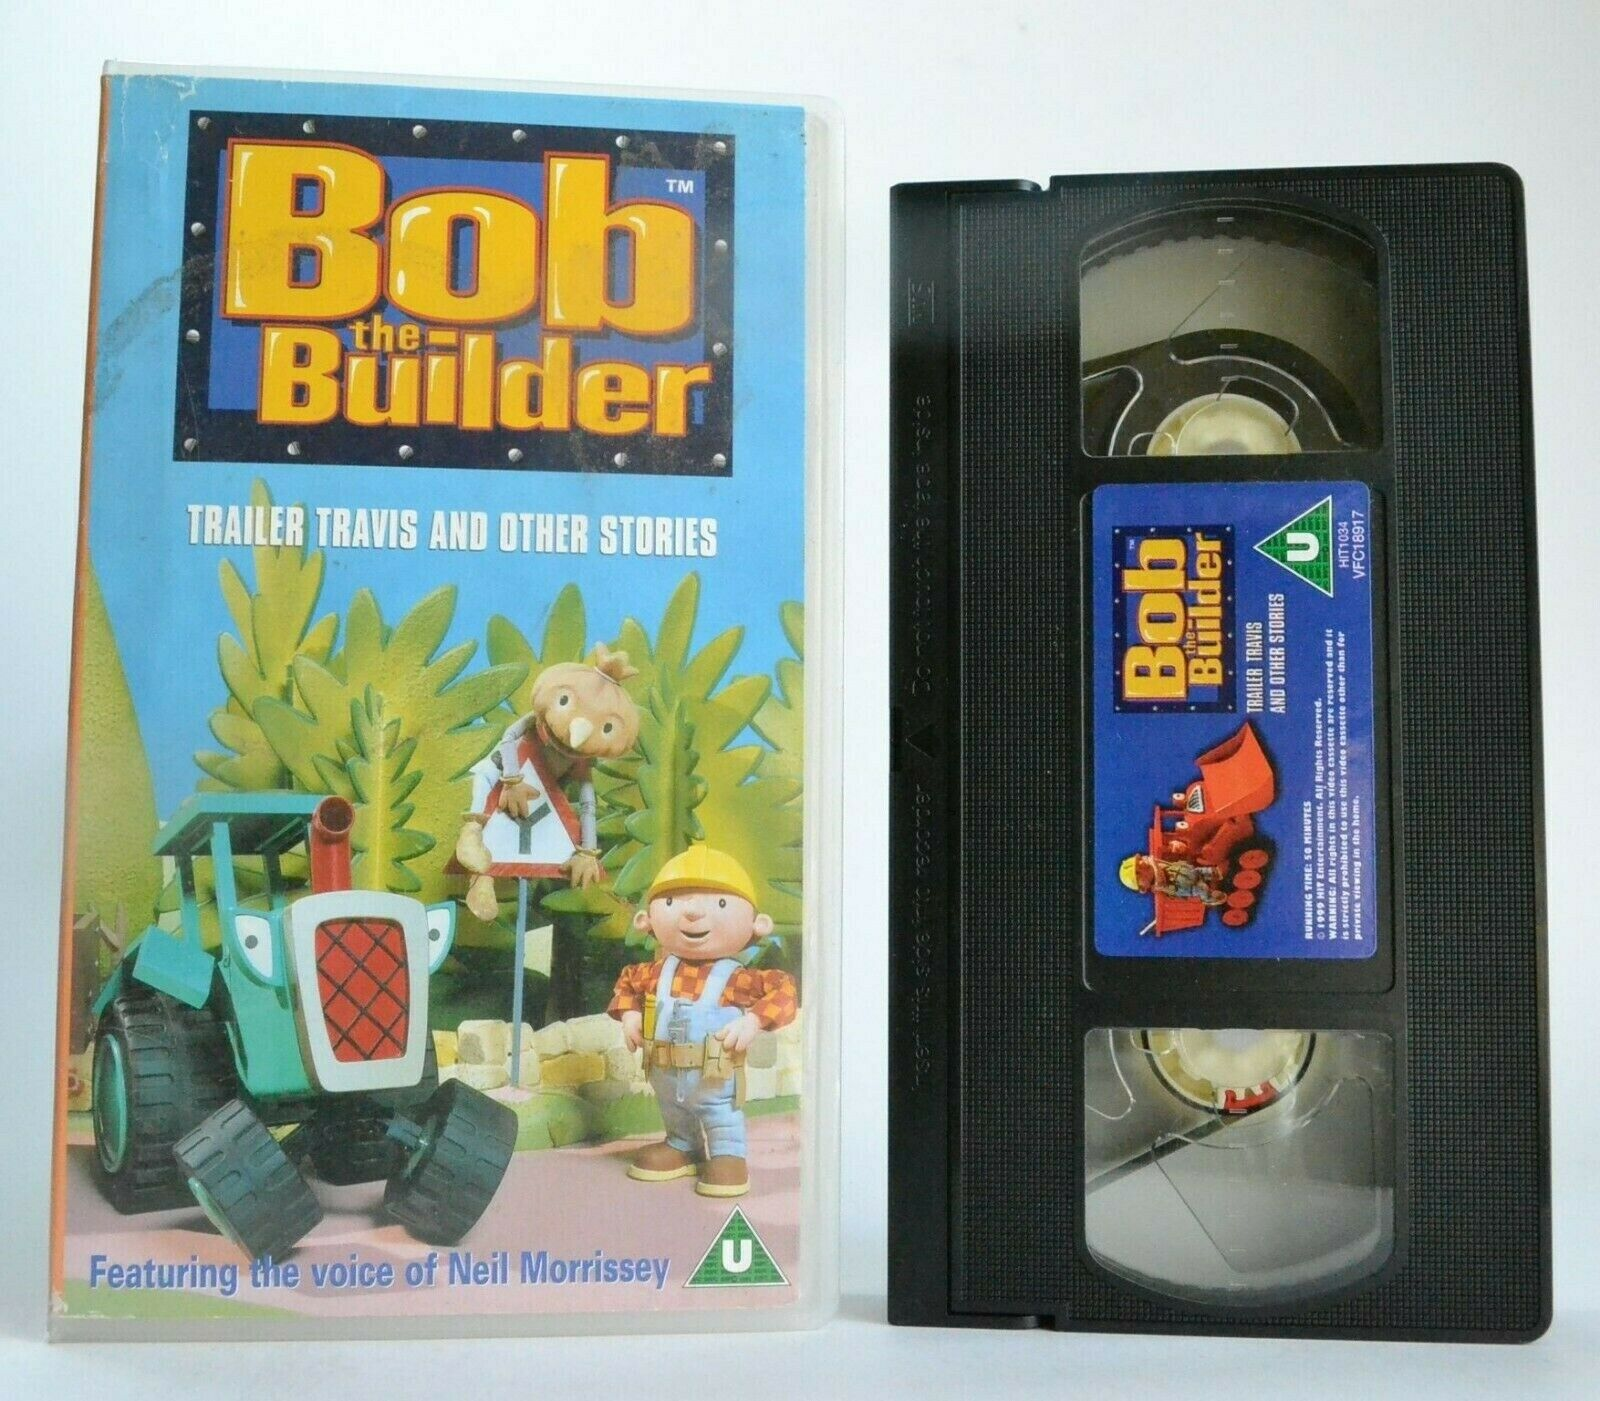 Bob The Builder: Trailer Travis And Other Stories - Animated - Children's - VHS